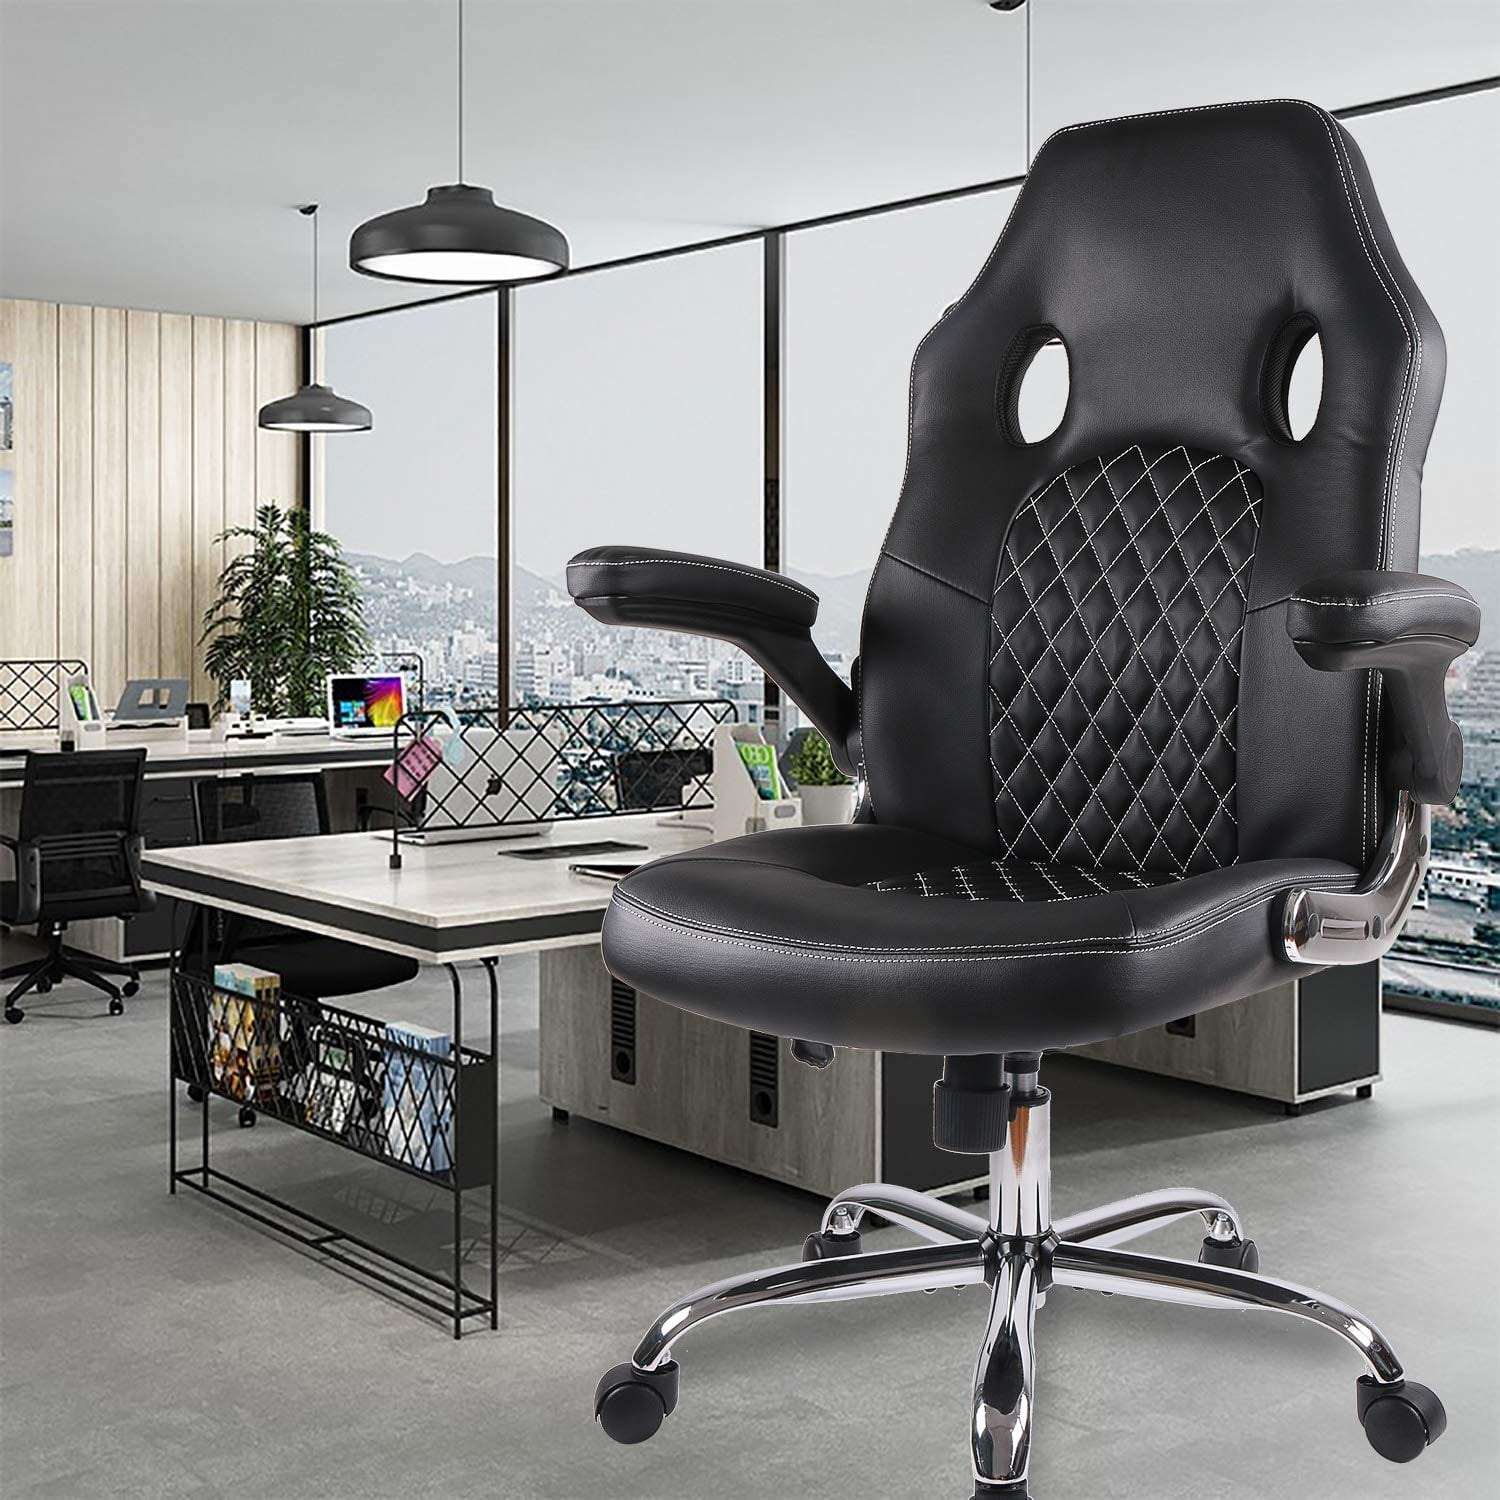 SmugDesk Office Chair Desk Leather Gaming Chair, High Back Ergonomic Adjustable Racing Chair,Task Swivel Executive Computer Chair (Black)